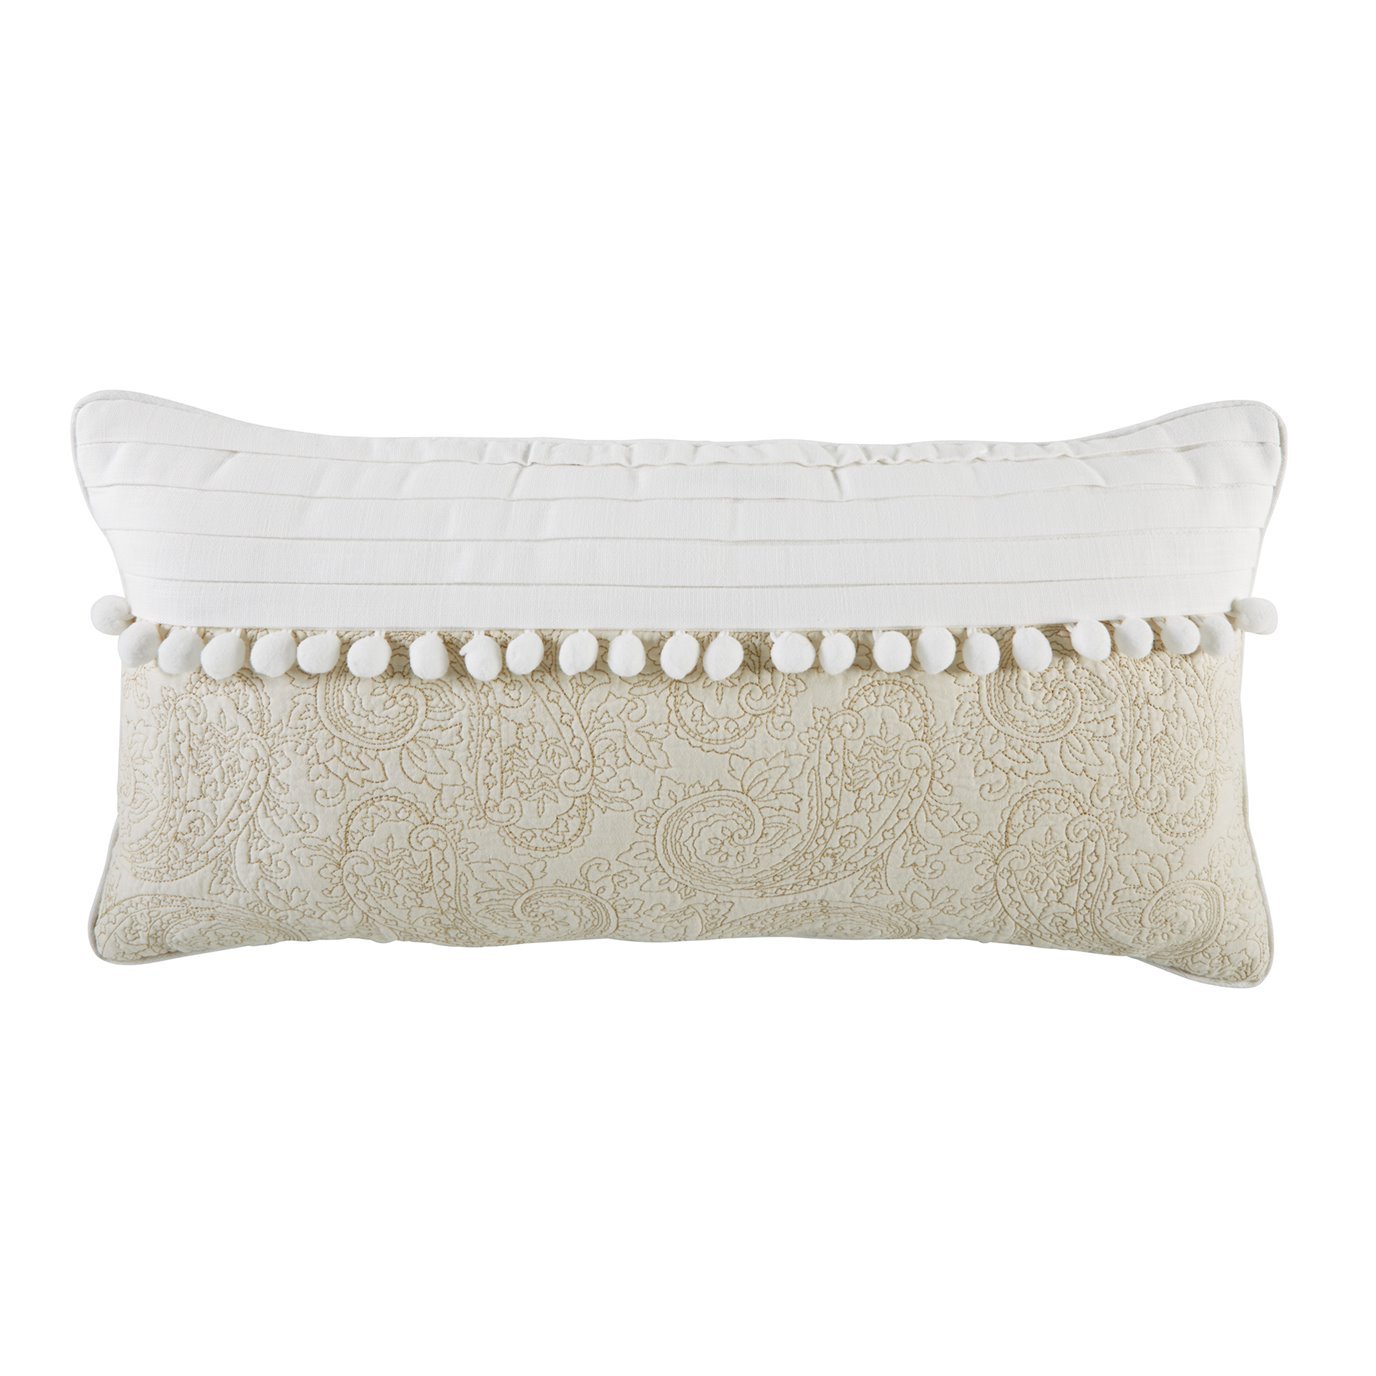 Croscill Cela Boudoir Pillow 22x11